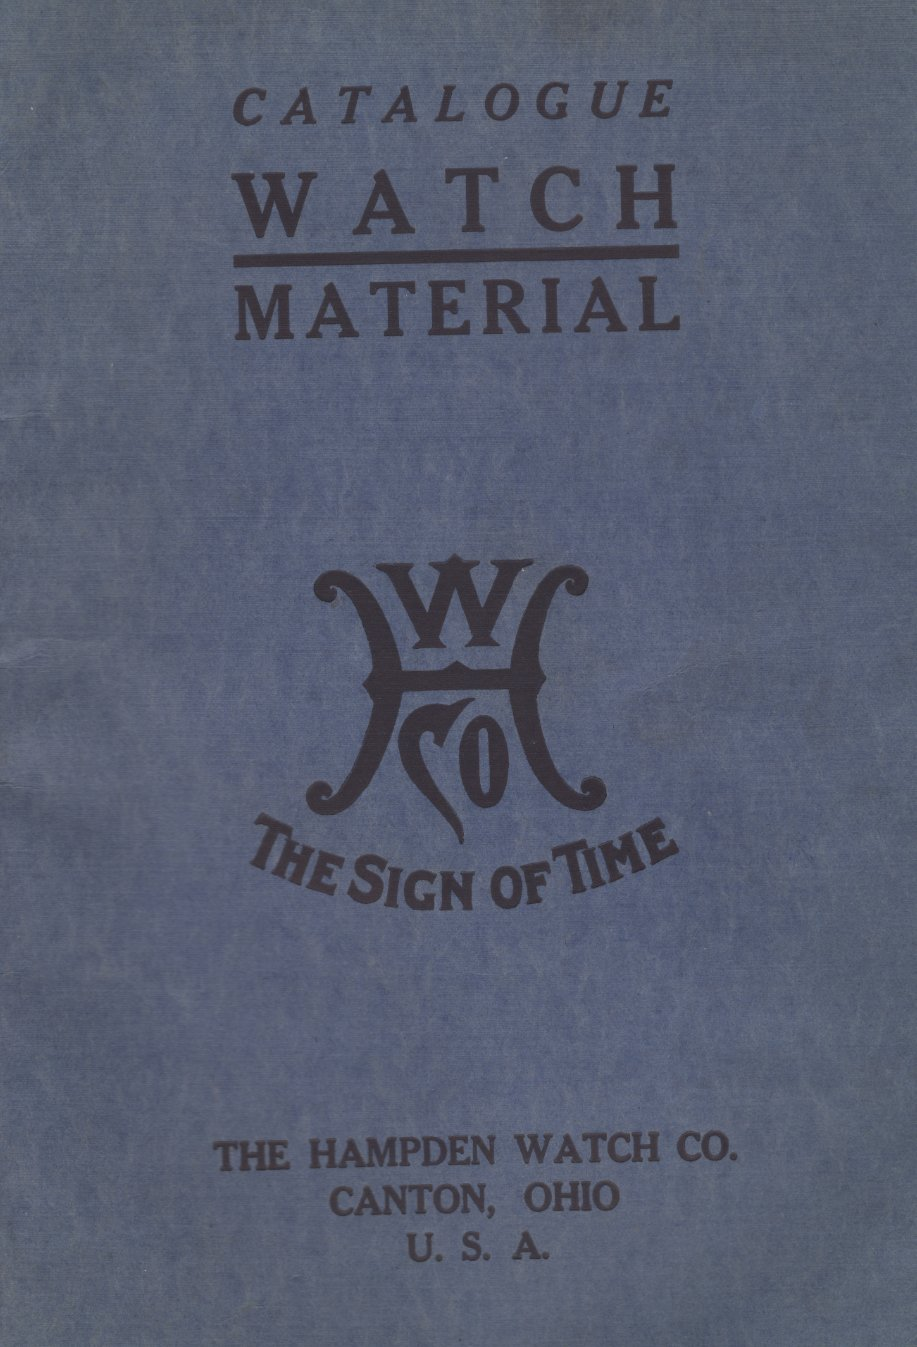 c.1915 Hampden Watch Company Material Catalog Cover Image